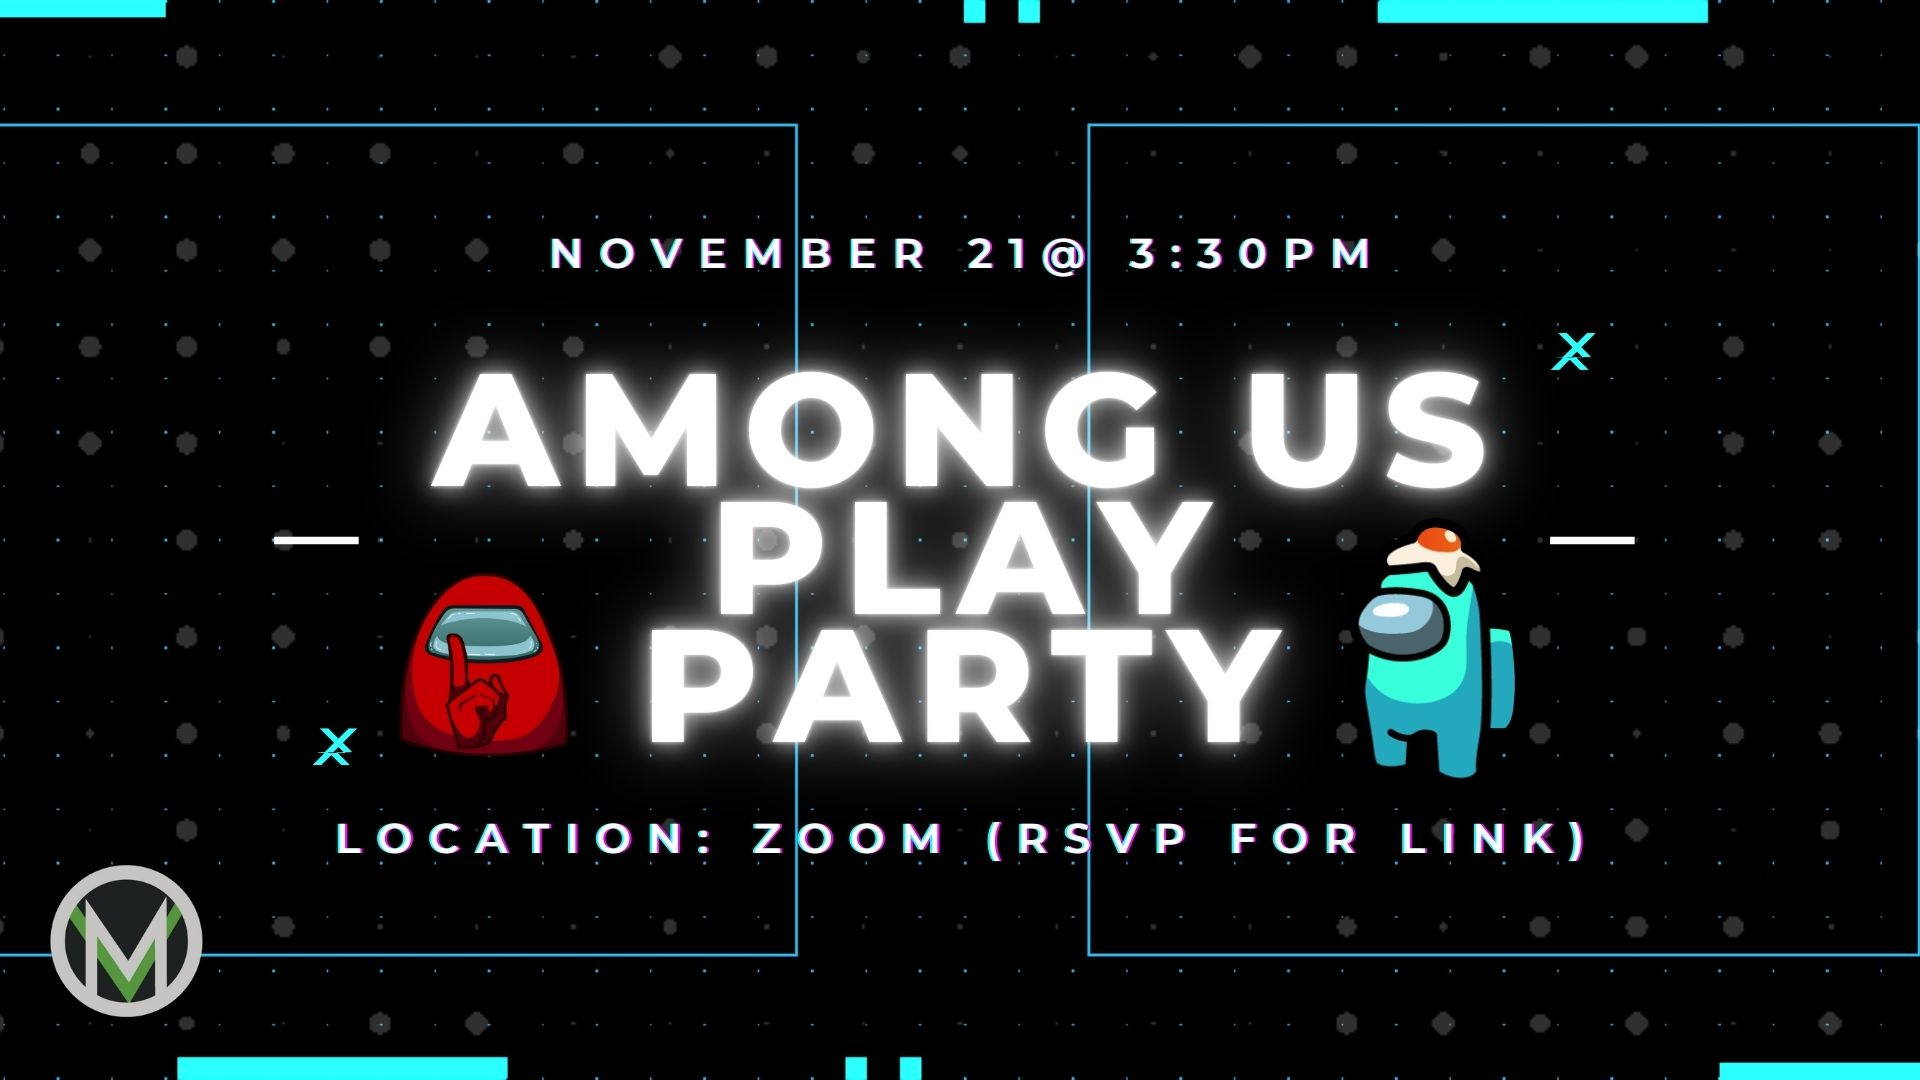 Among uS Play Party